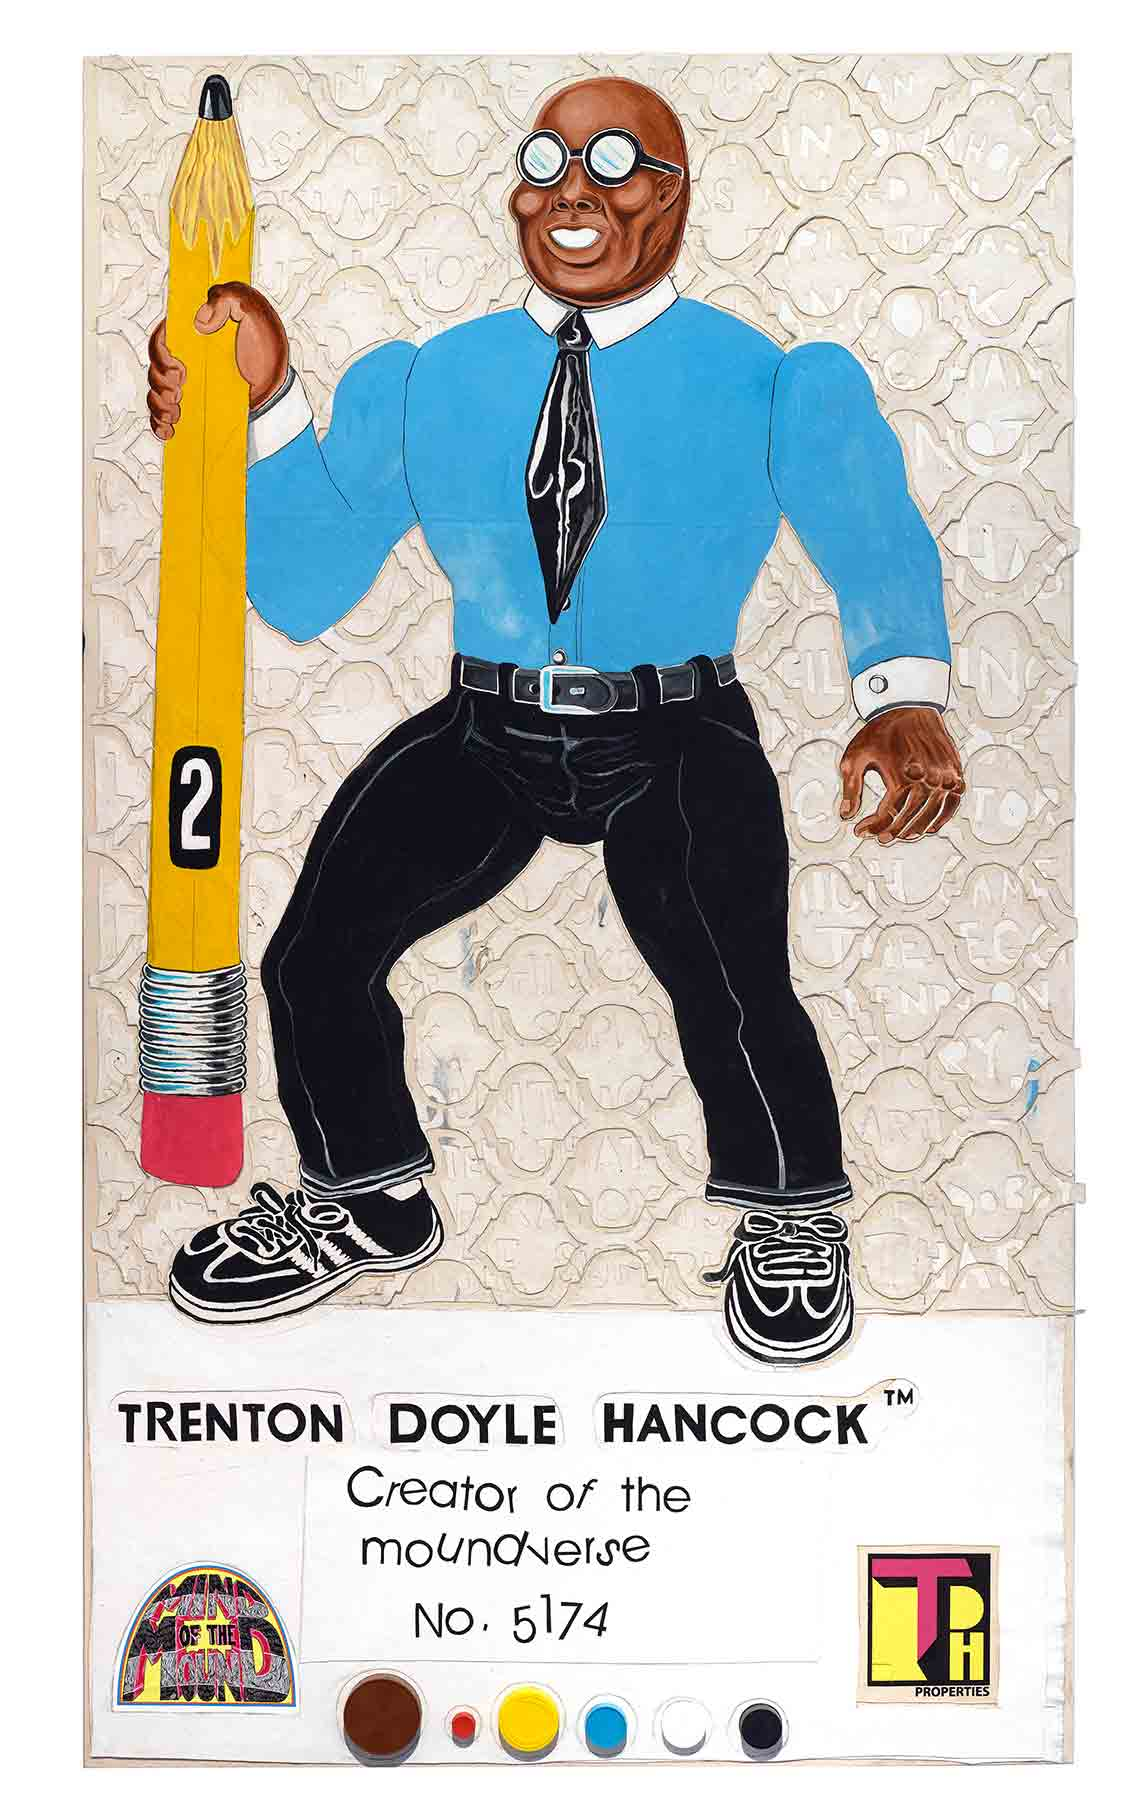 Trenton-Doyle-Hancock-Creator-of-the-Moundverse-No.-5174